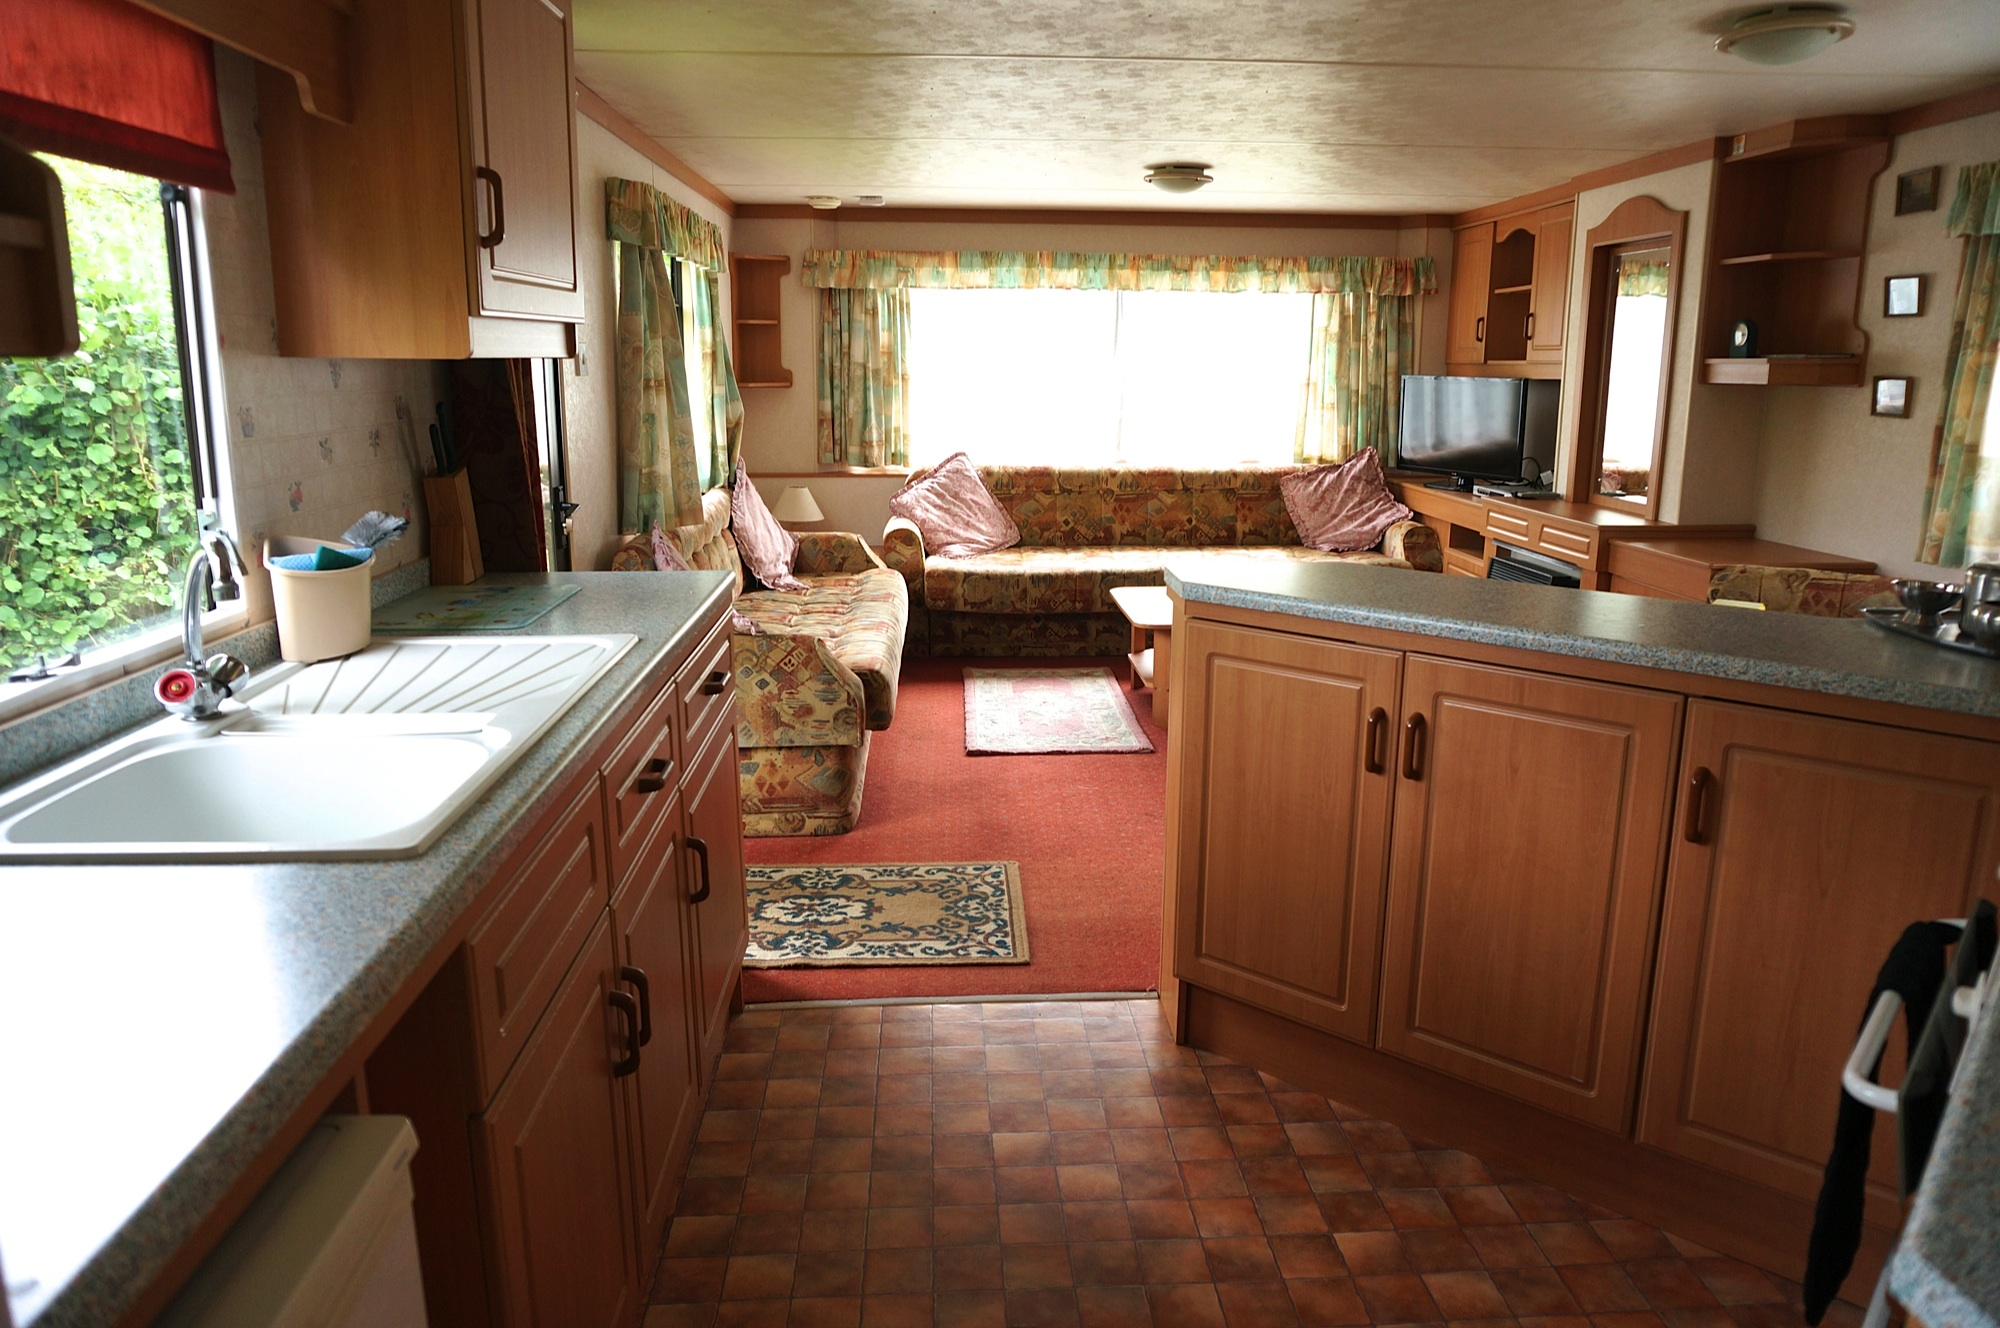 Creative Mobile Homes Long Termquot  Local Classifieds To Rent In The UK And